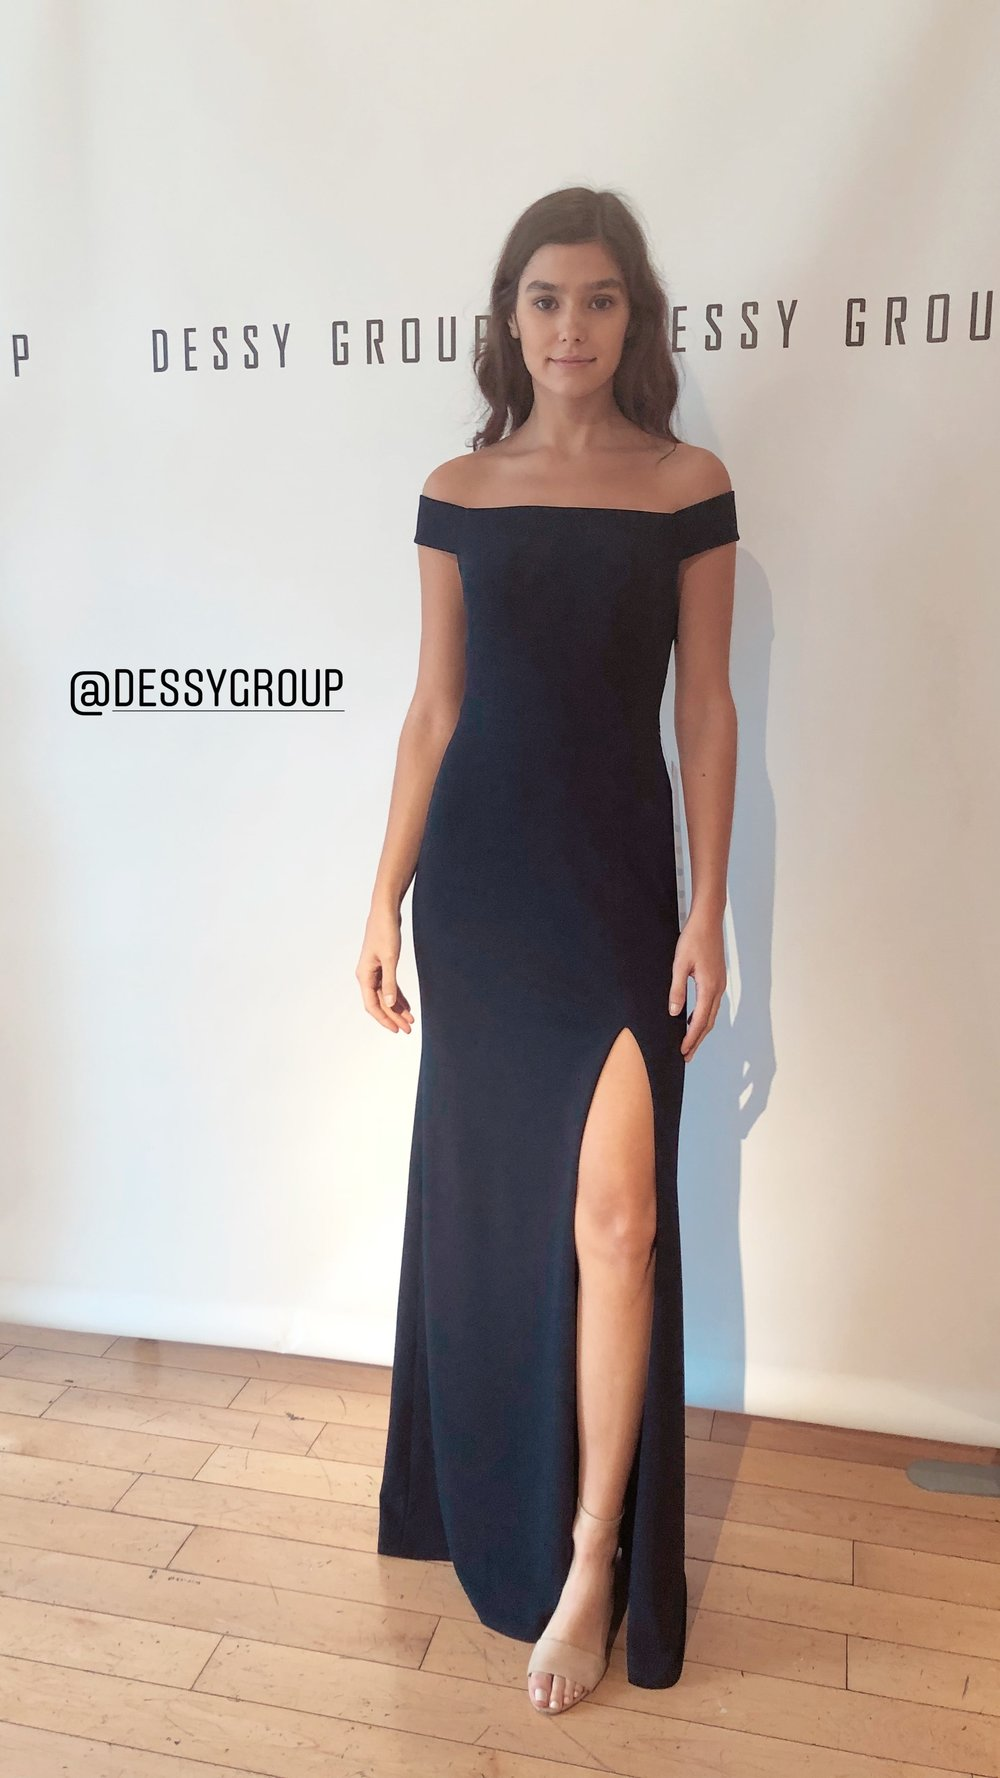 Classic crepe slit from Dessy Group